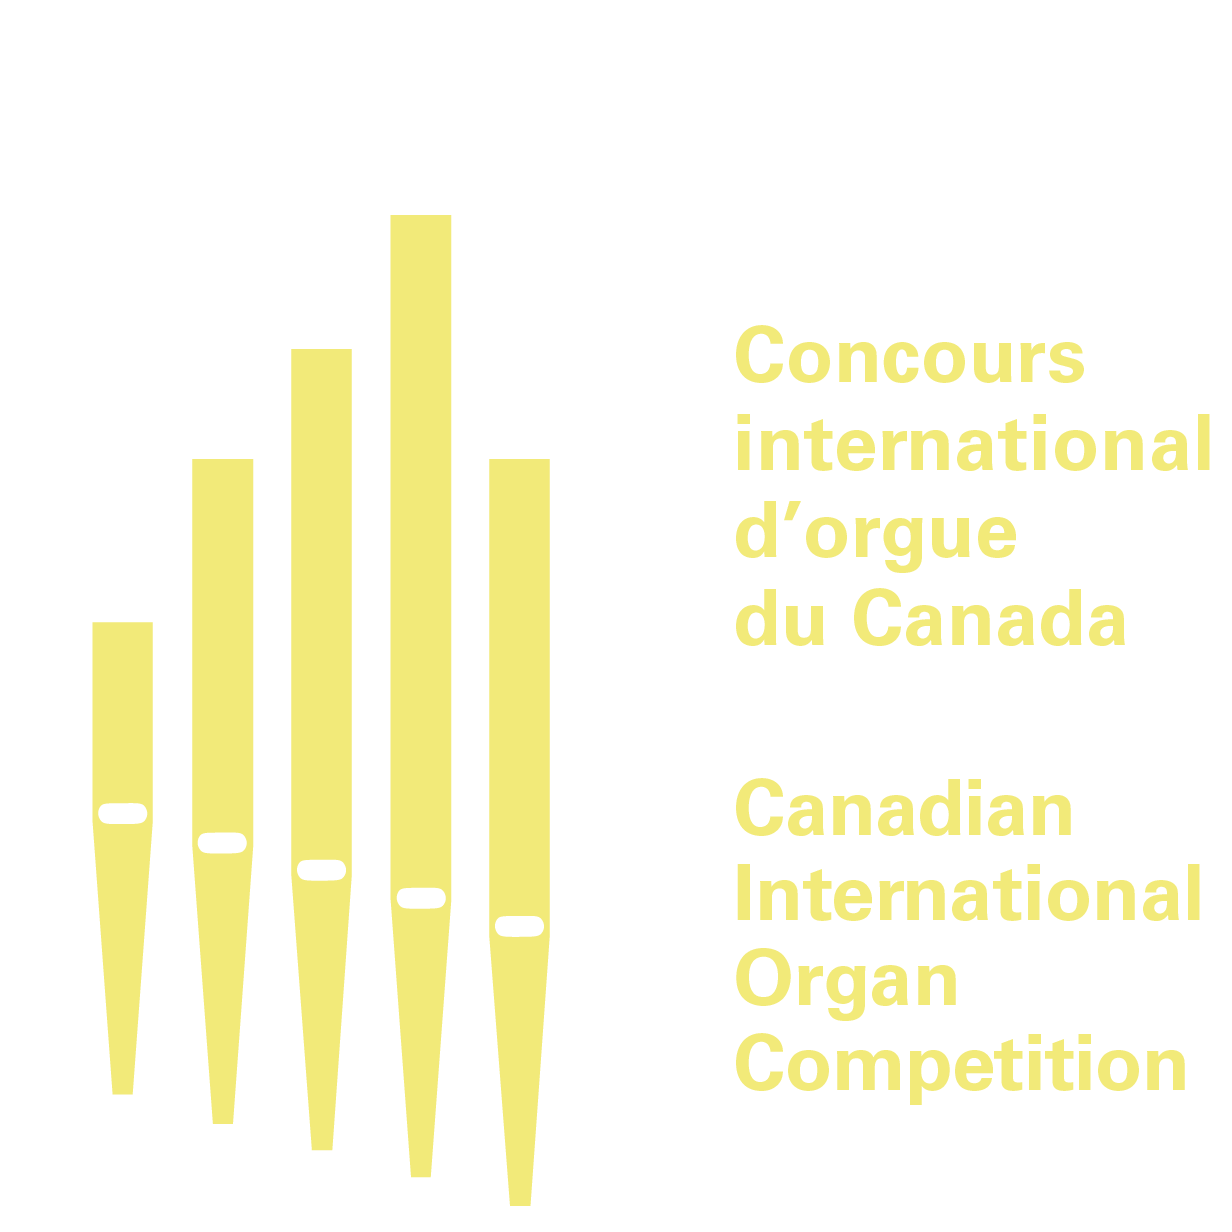 Canadian International Organ Competition